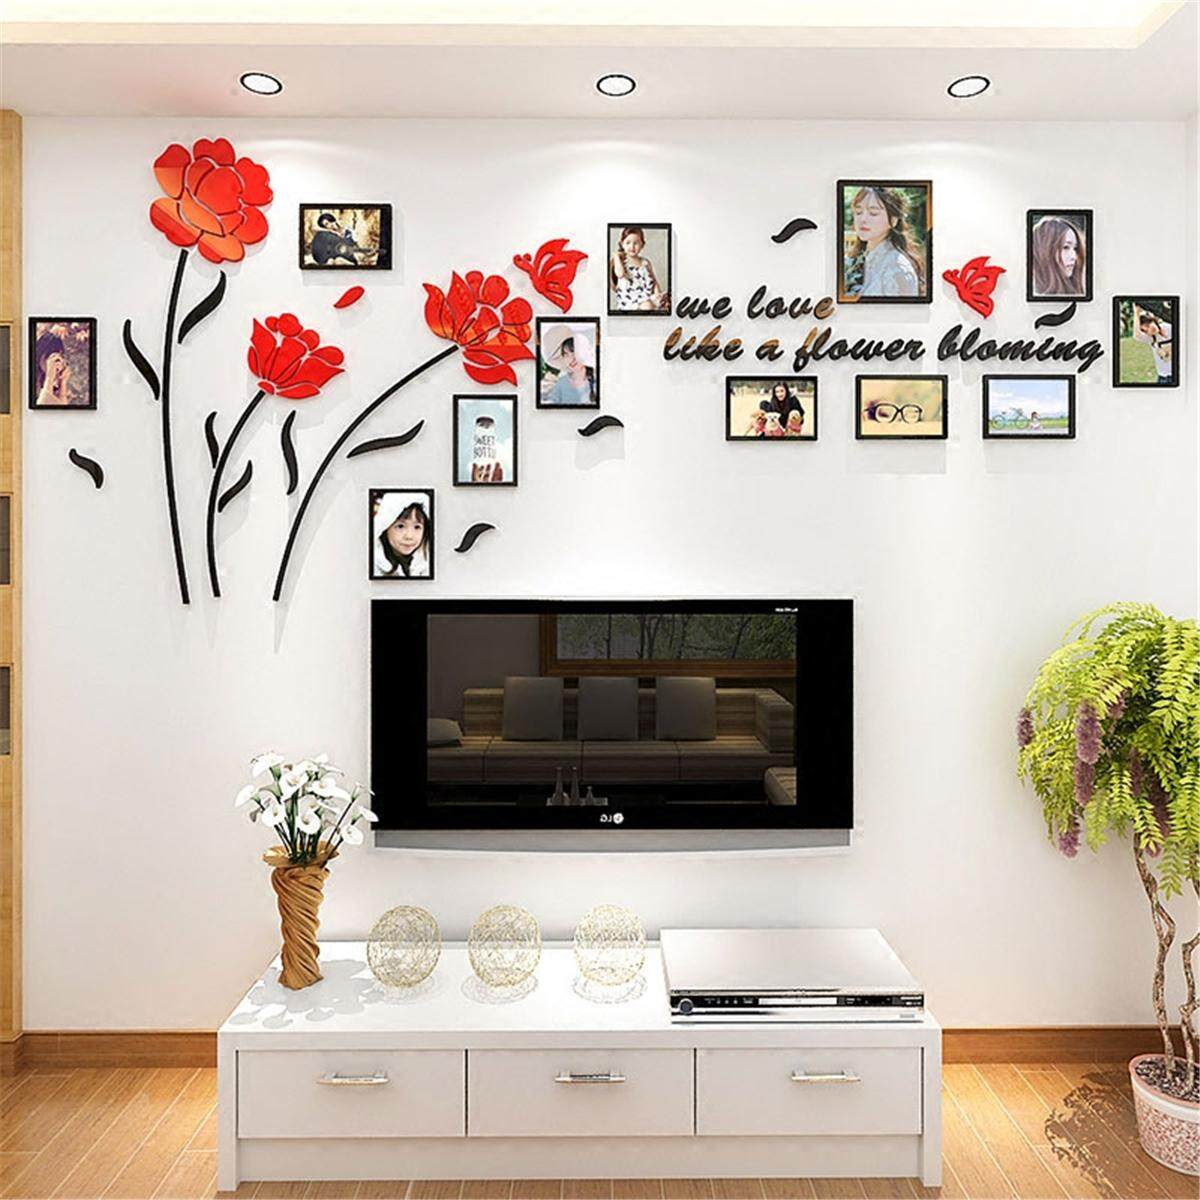 3D Acrylic Family Photo Picture Frame Wall Sticker Art Background Home Decor New Photo Frame Family Set Picture Wall Collage Hanging Decor #150*61